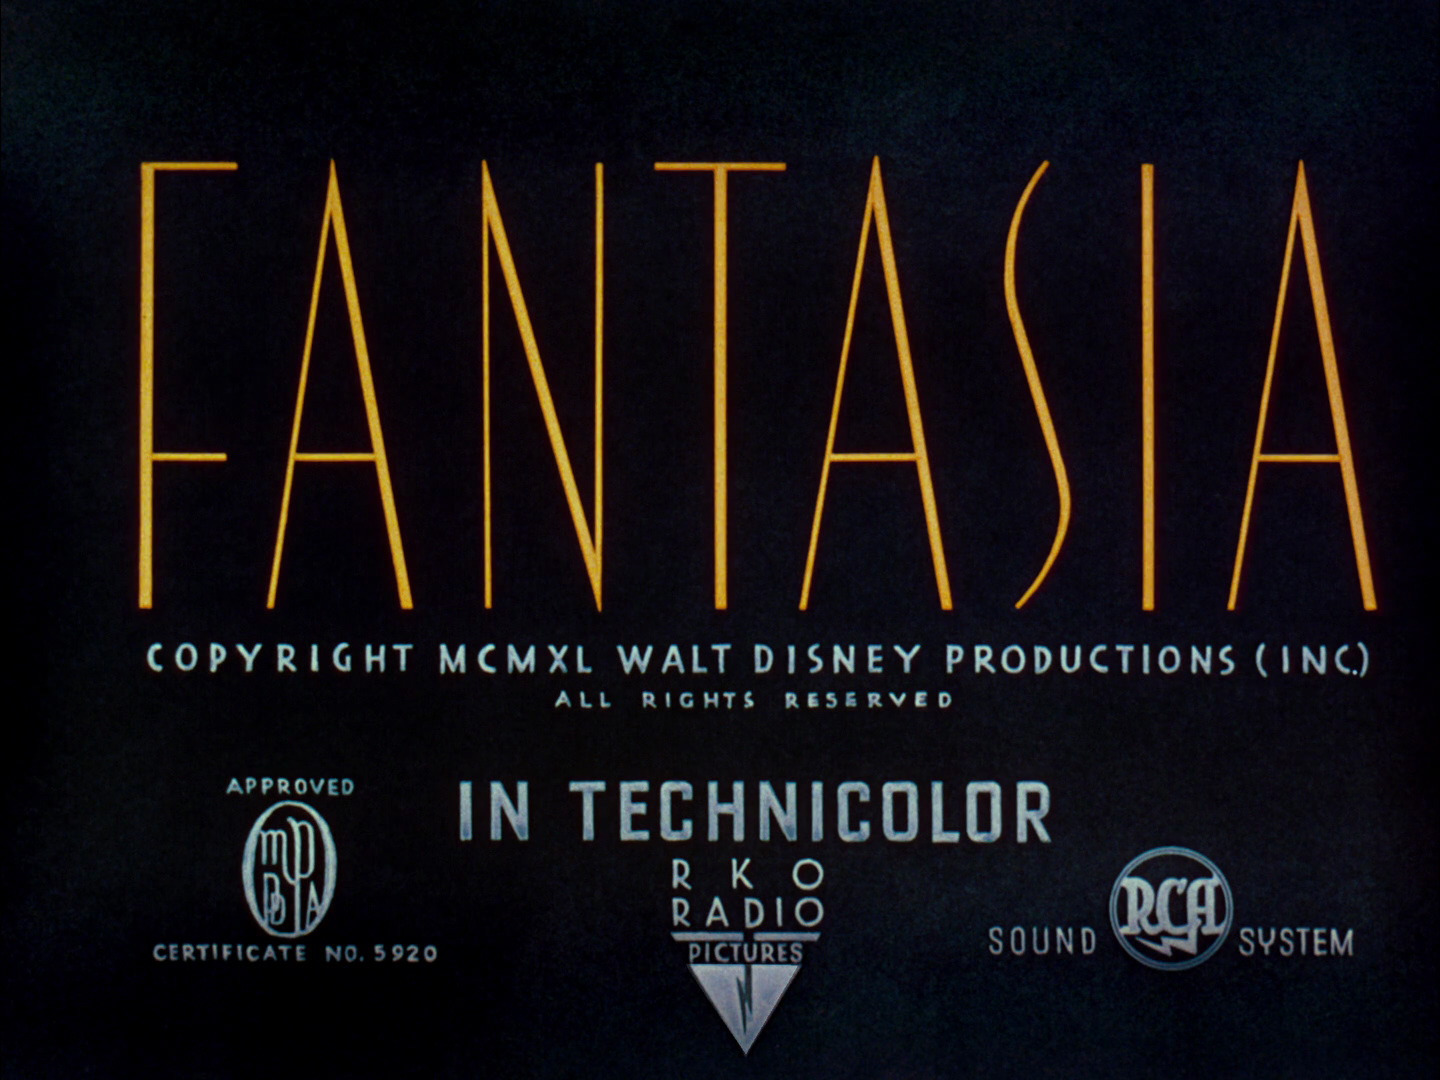 the life and history of fantasia Fantasia is the third animated movie produced by walt disney productions  it tells the story of life on earth until the extinction of the dinosaurs.